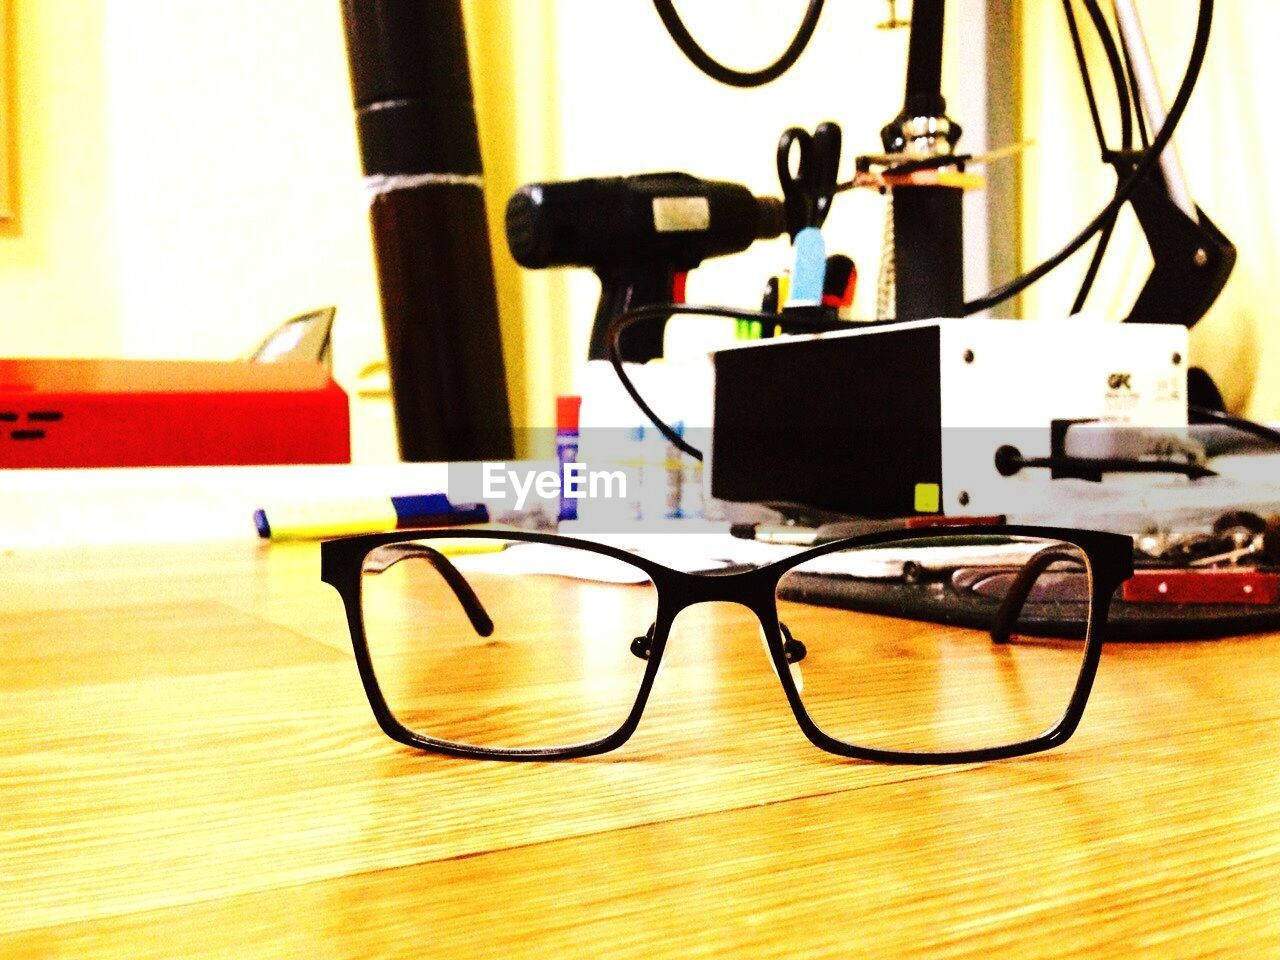 indoors, table, no people, eyeglasses, technology, close-up, day